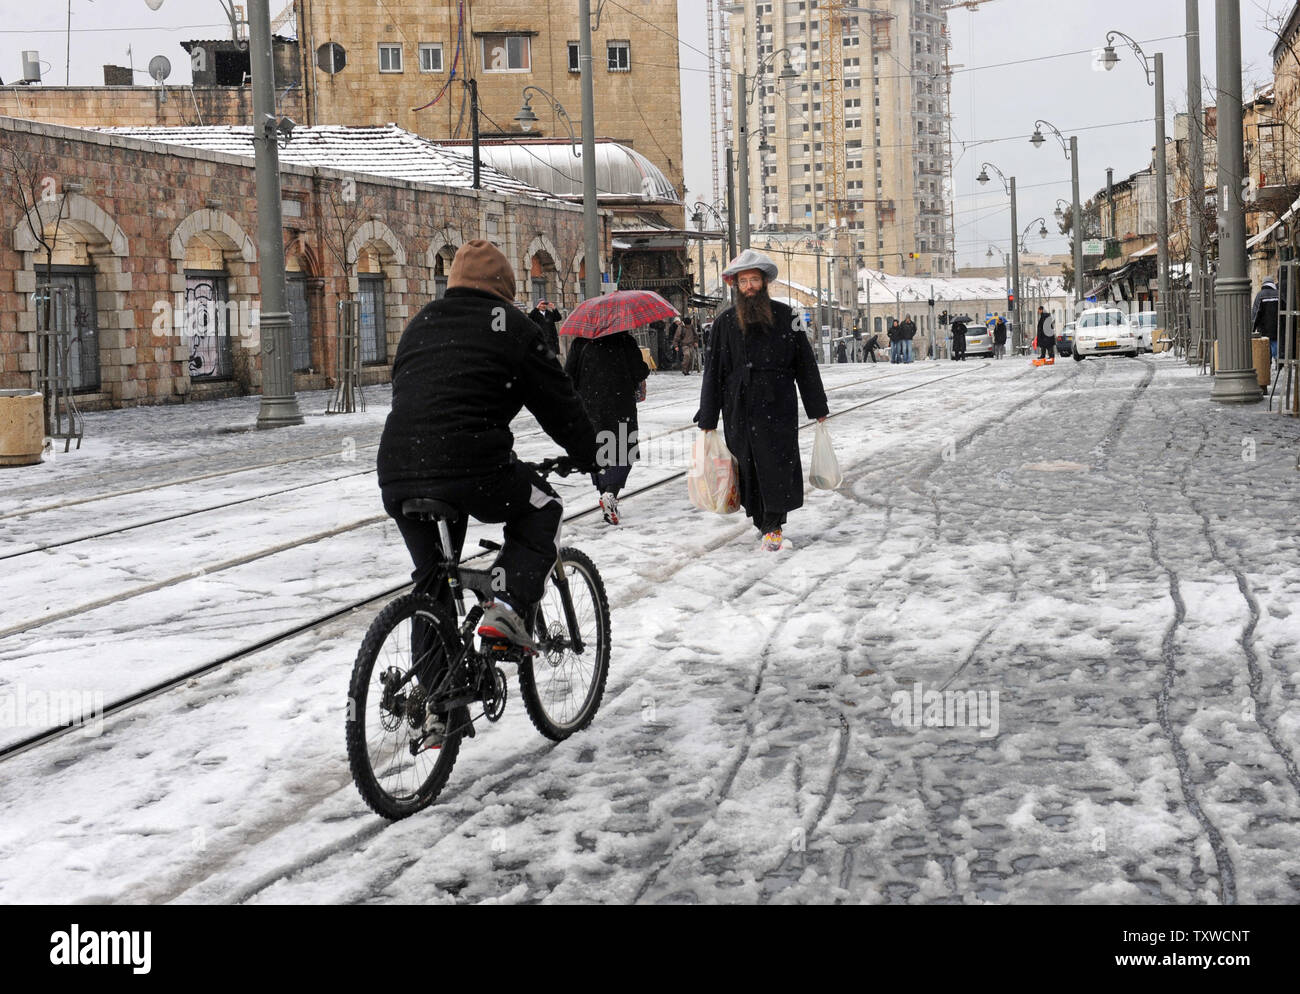 Israelis walk in a rare winter snow storm on Jaffa Road in central Jerusalem, March 2, 2012. Residents of Jerusalem woke to 1.575 inches of snow in the first snow fall in Jerusalem in more than two years.  UPI/Debbie Hill - Stock Image